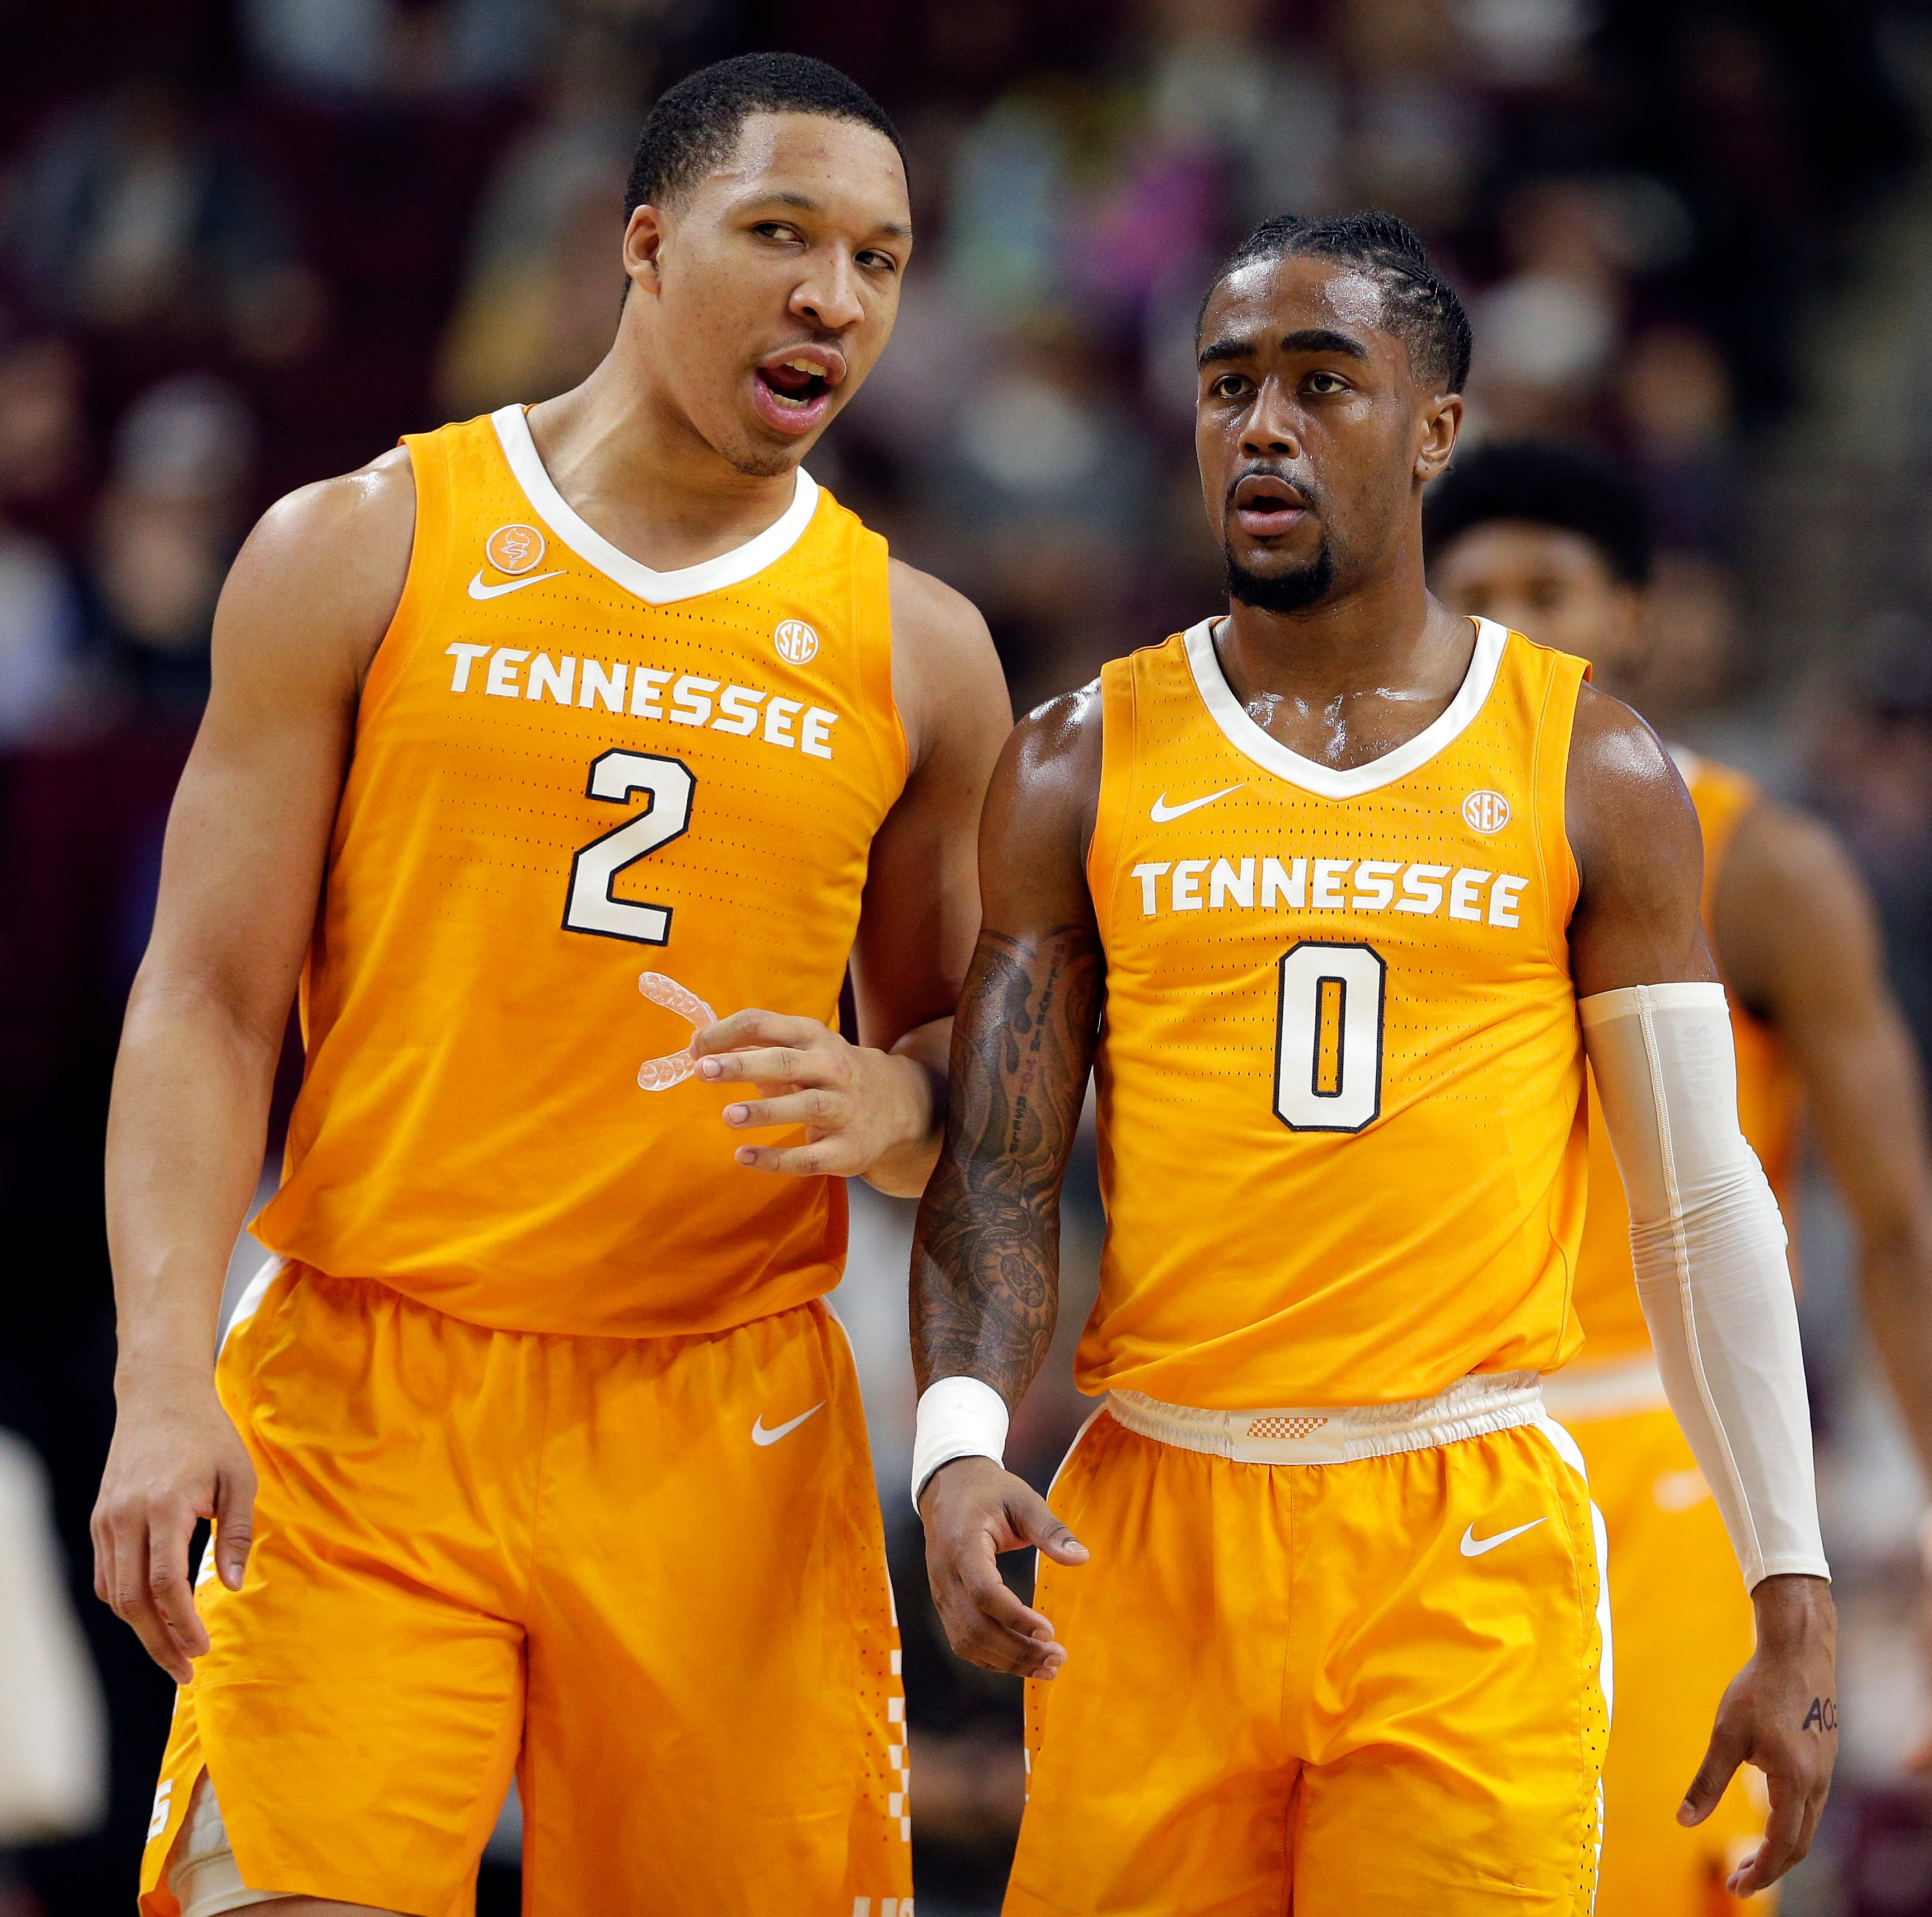 SEC Network reimagines iconic Temptations album cover with UT Vols players, orange suits